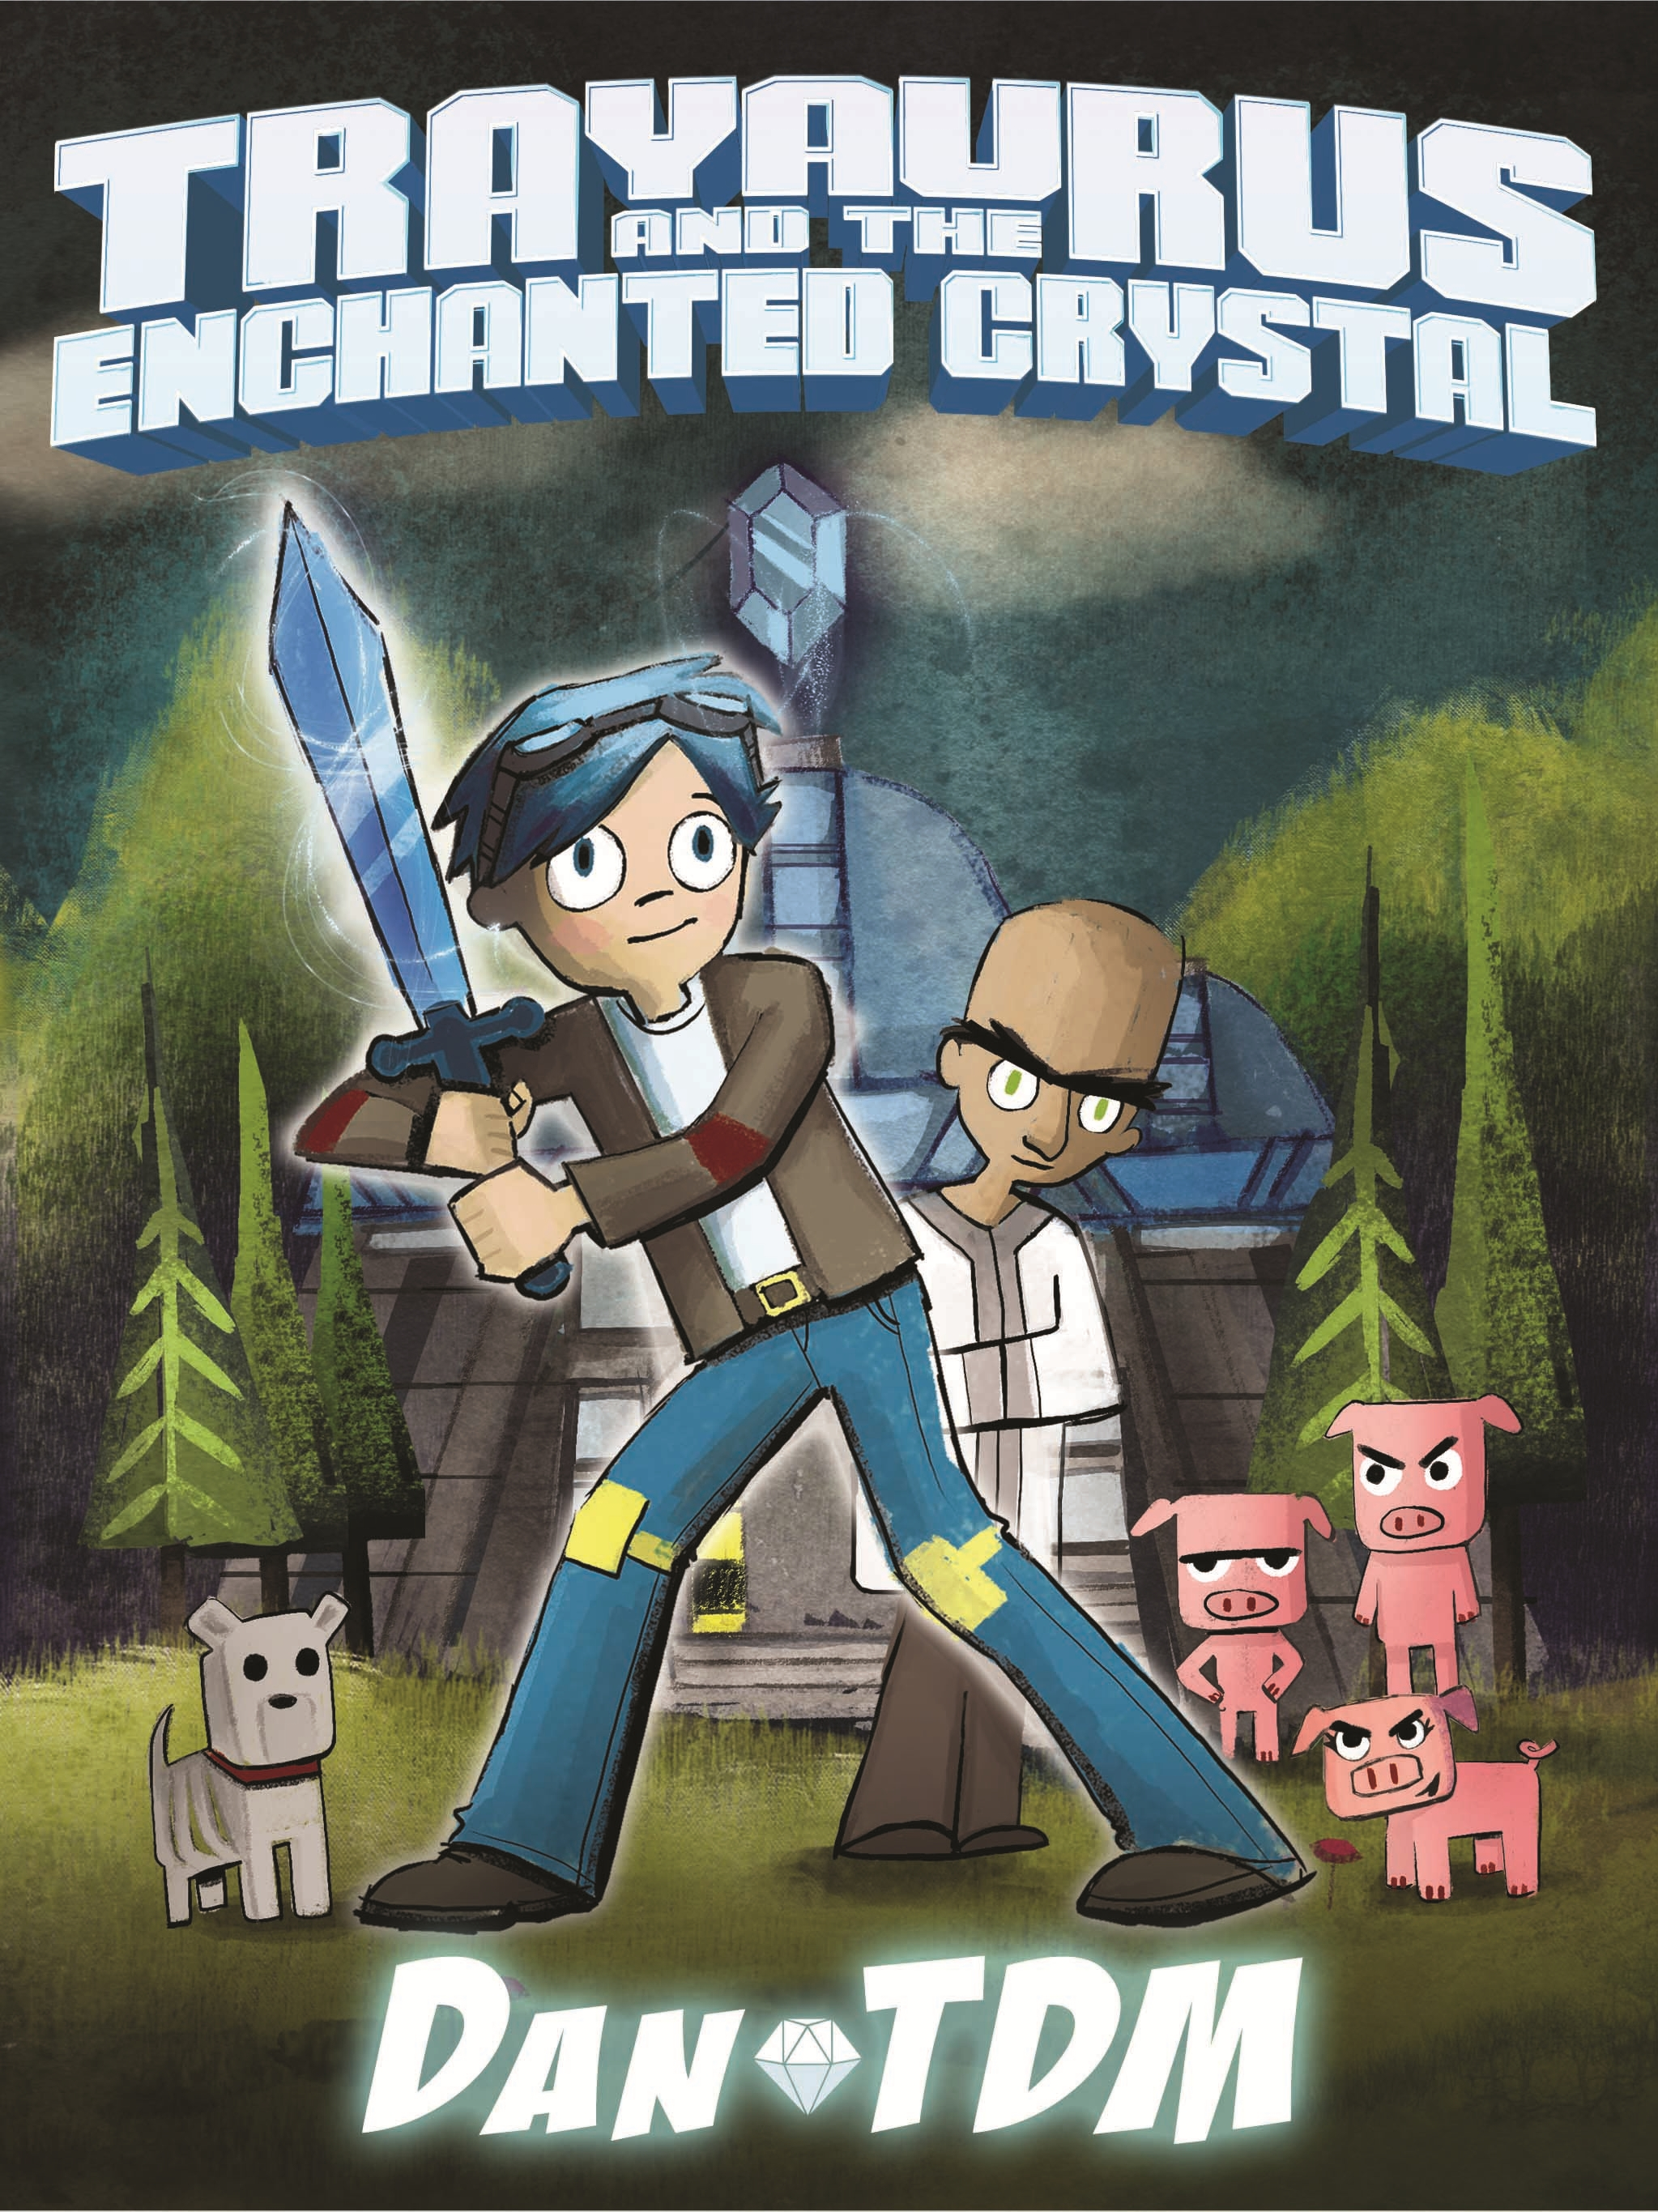 DanTDM: Trayaurus and the Enchanted Crystal by The Diamond Minecart, ISBN: 9781409168393